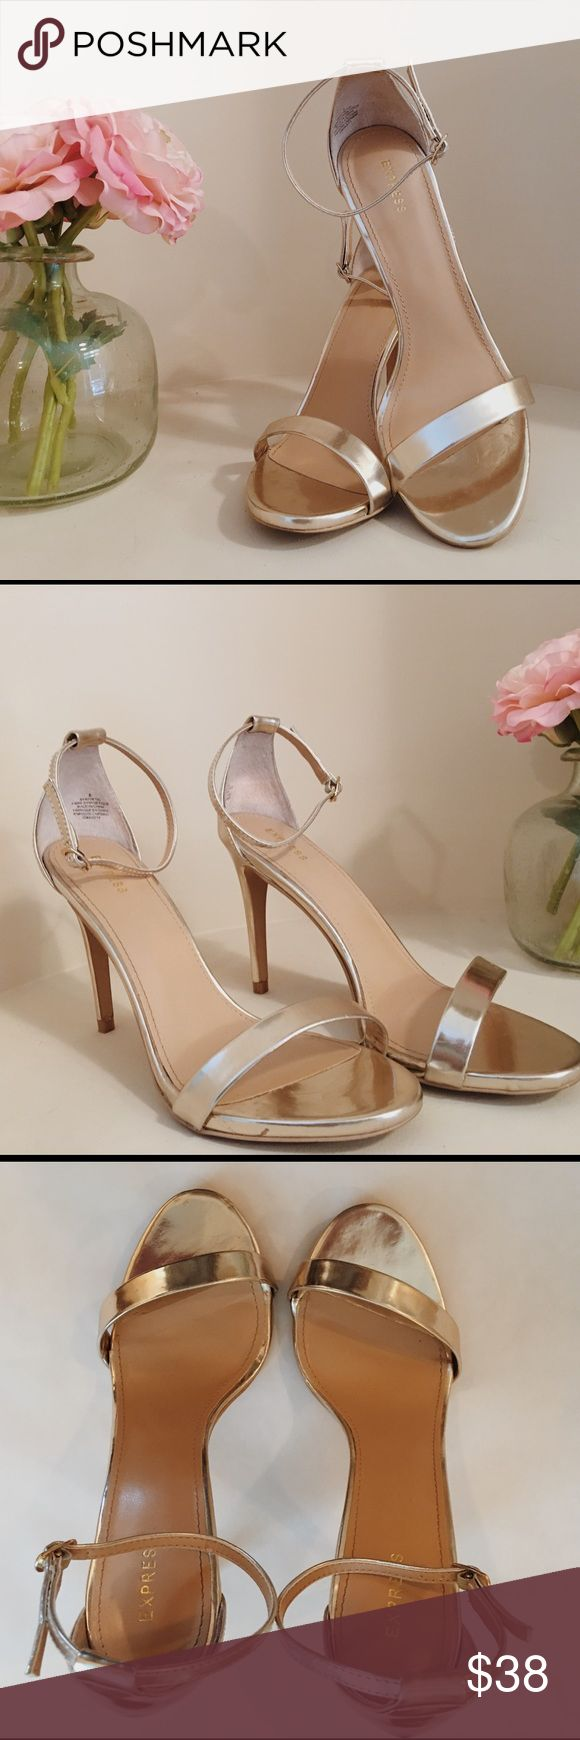 Express Gold Stilettos: 8 Express Gold Stilettos size 8. Worn once- like new! Express Shoes